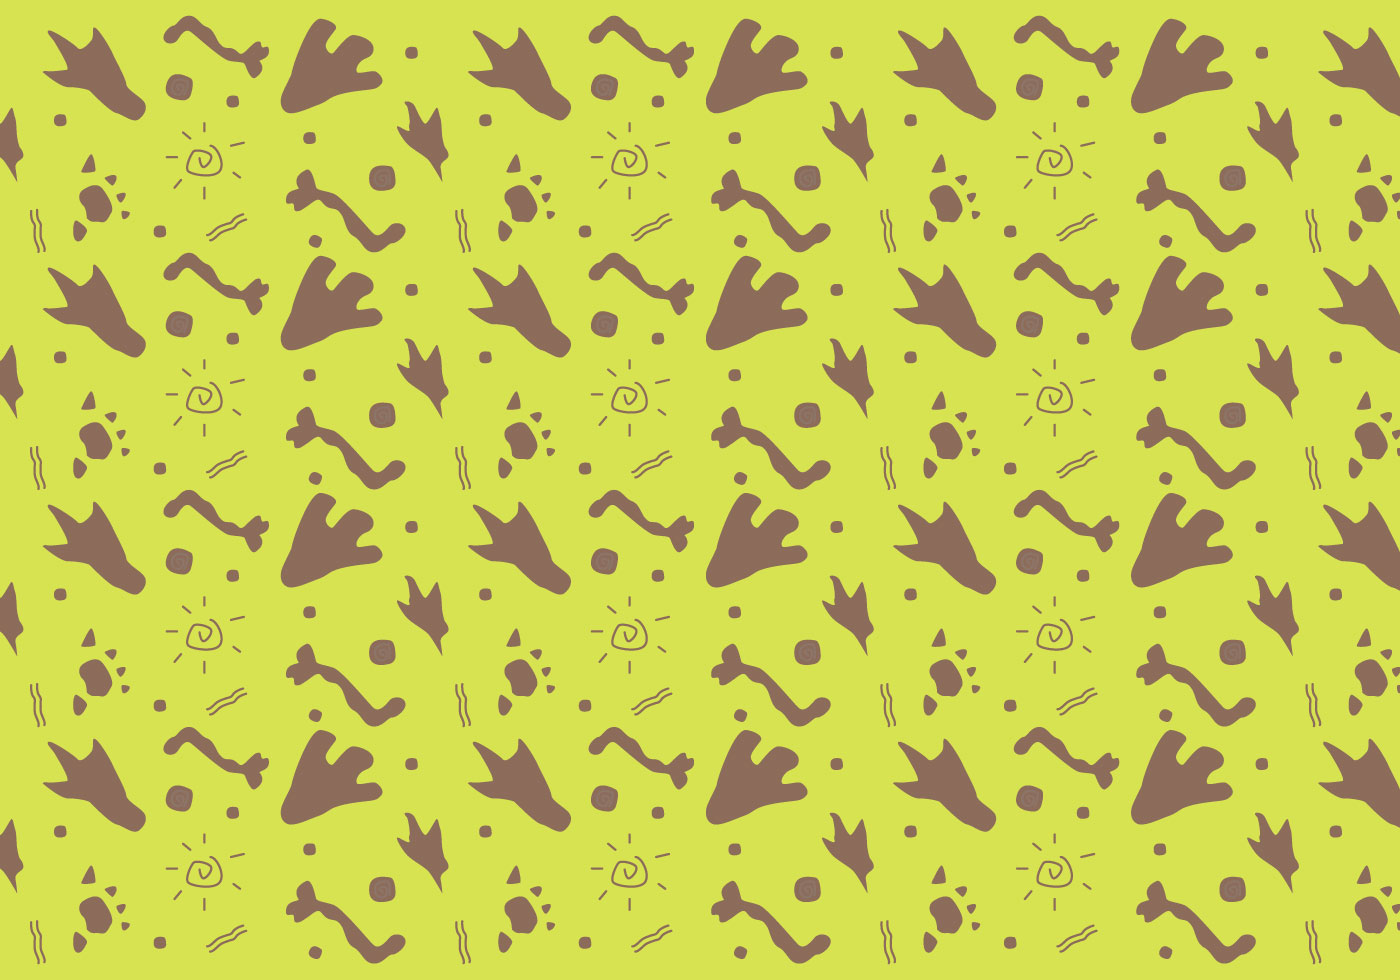 Skeleton Pattern Wallpaper Cute Free Dinosaur Pattern 9 Download Free Vector Art Stock